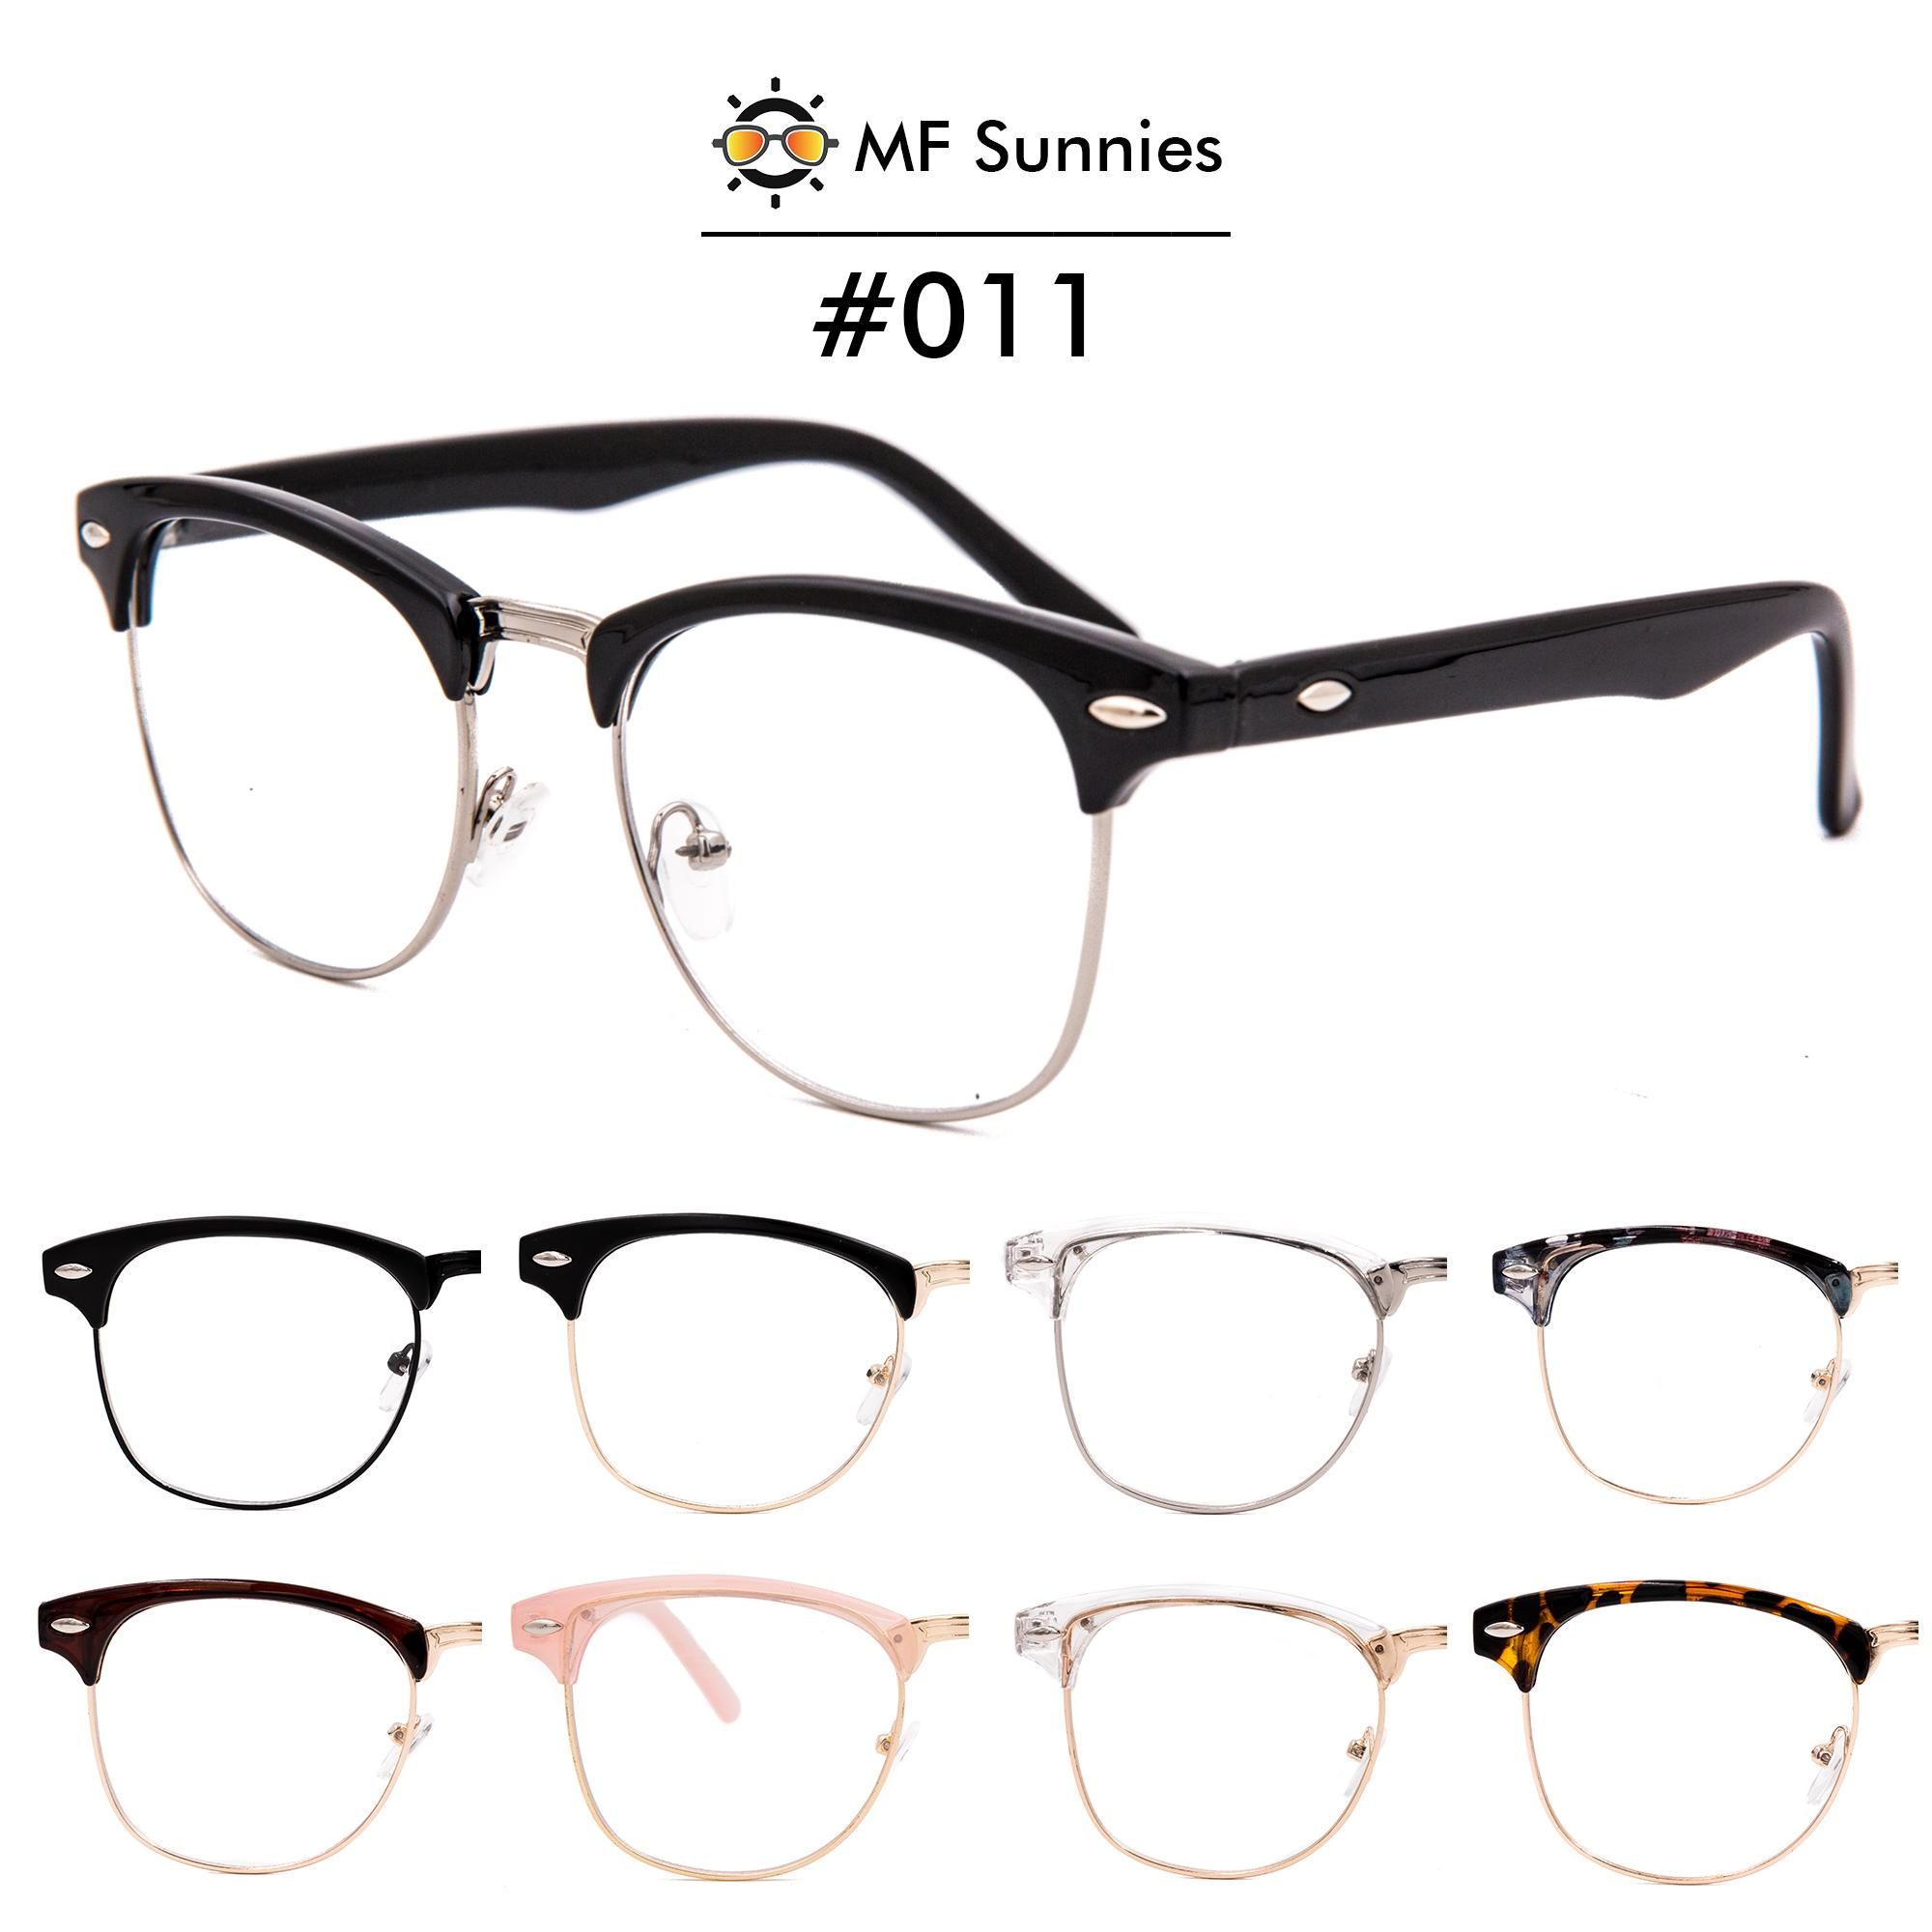 3df947fcc63f Eyeglasses for sale - Reading Glasses online brands